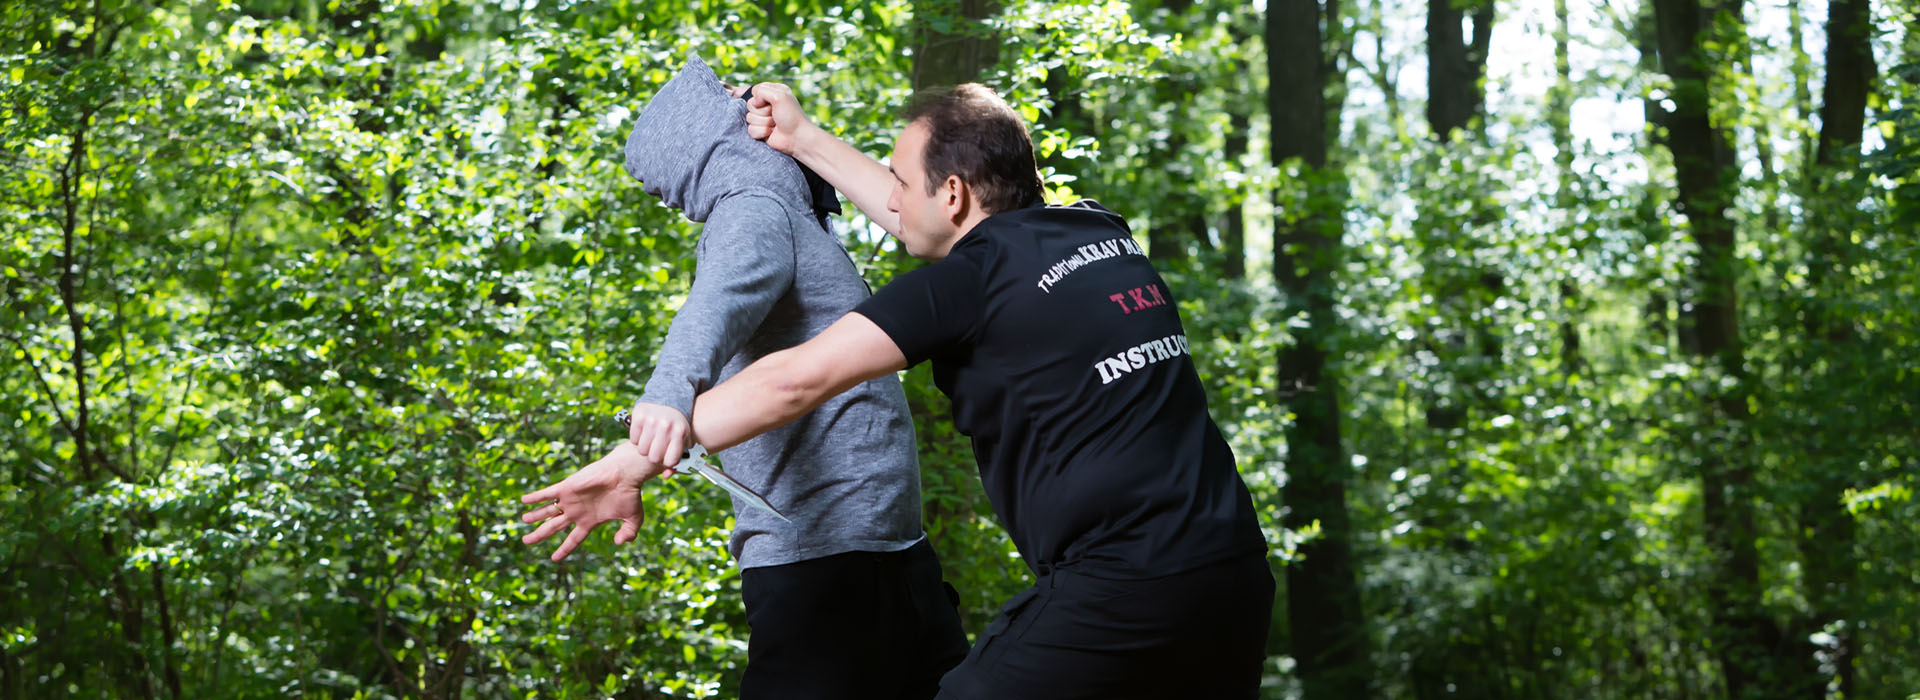 Krav Maga as a 2nd nature